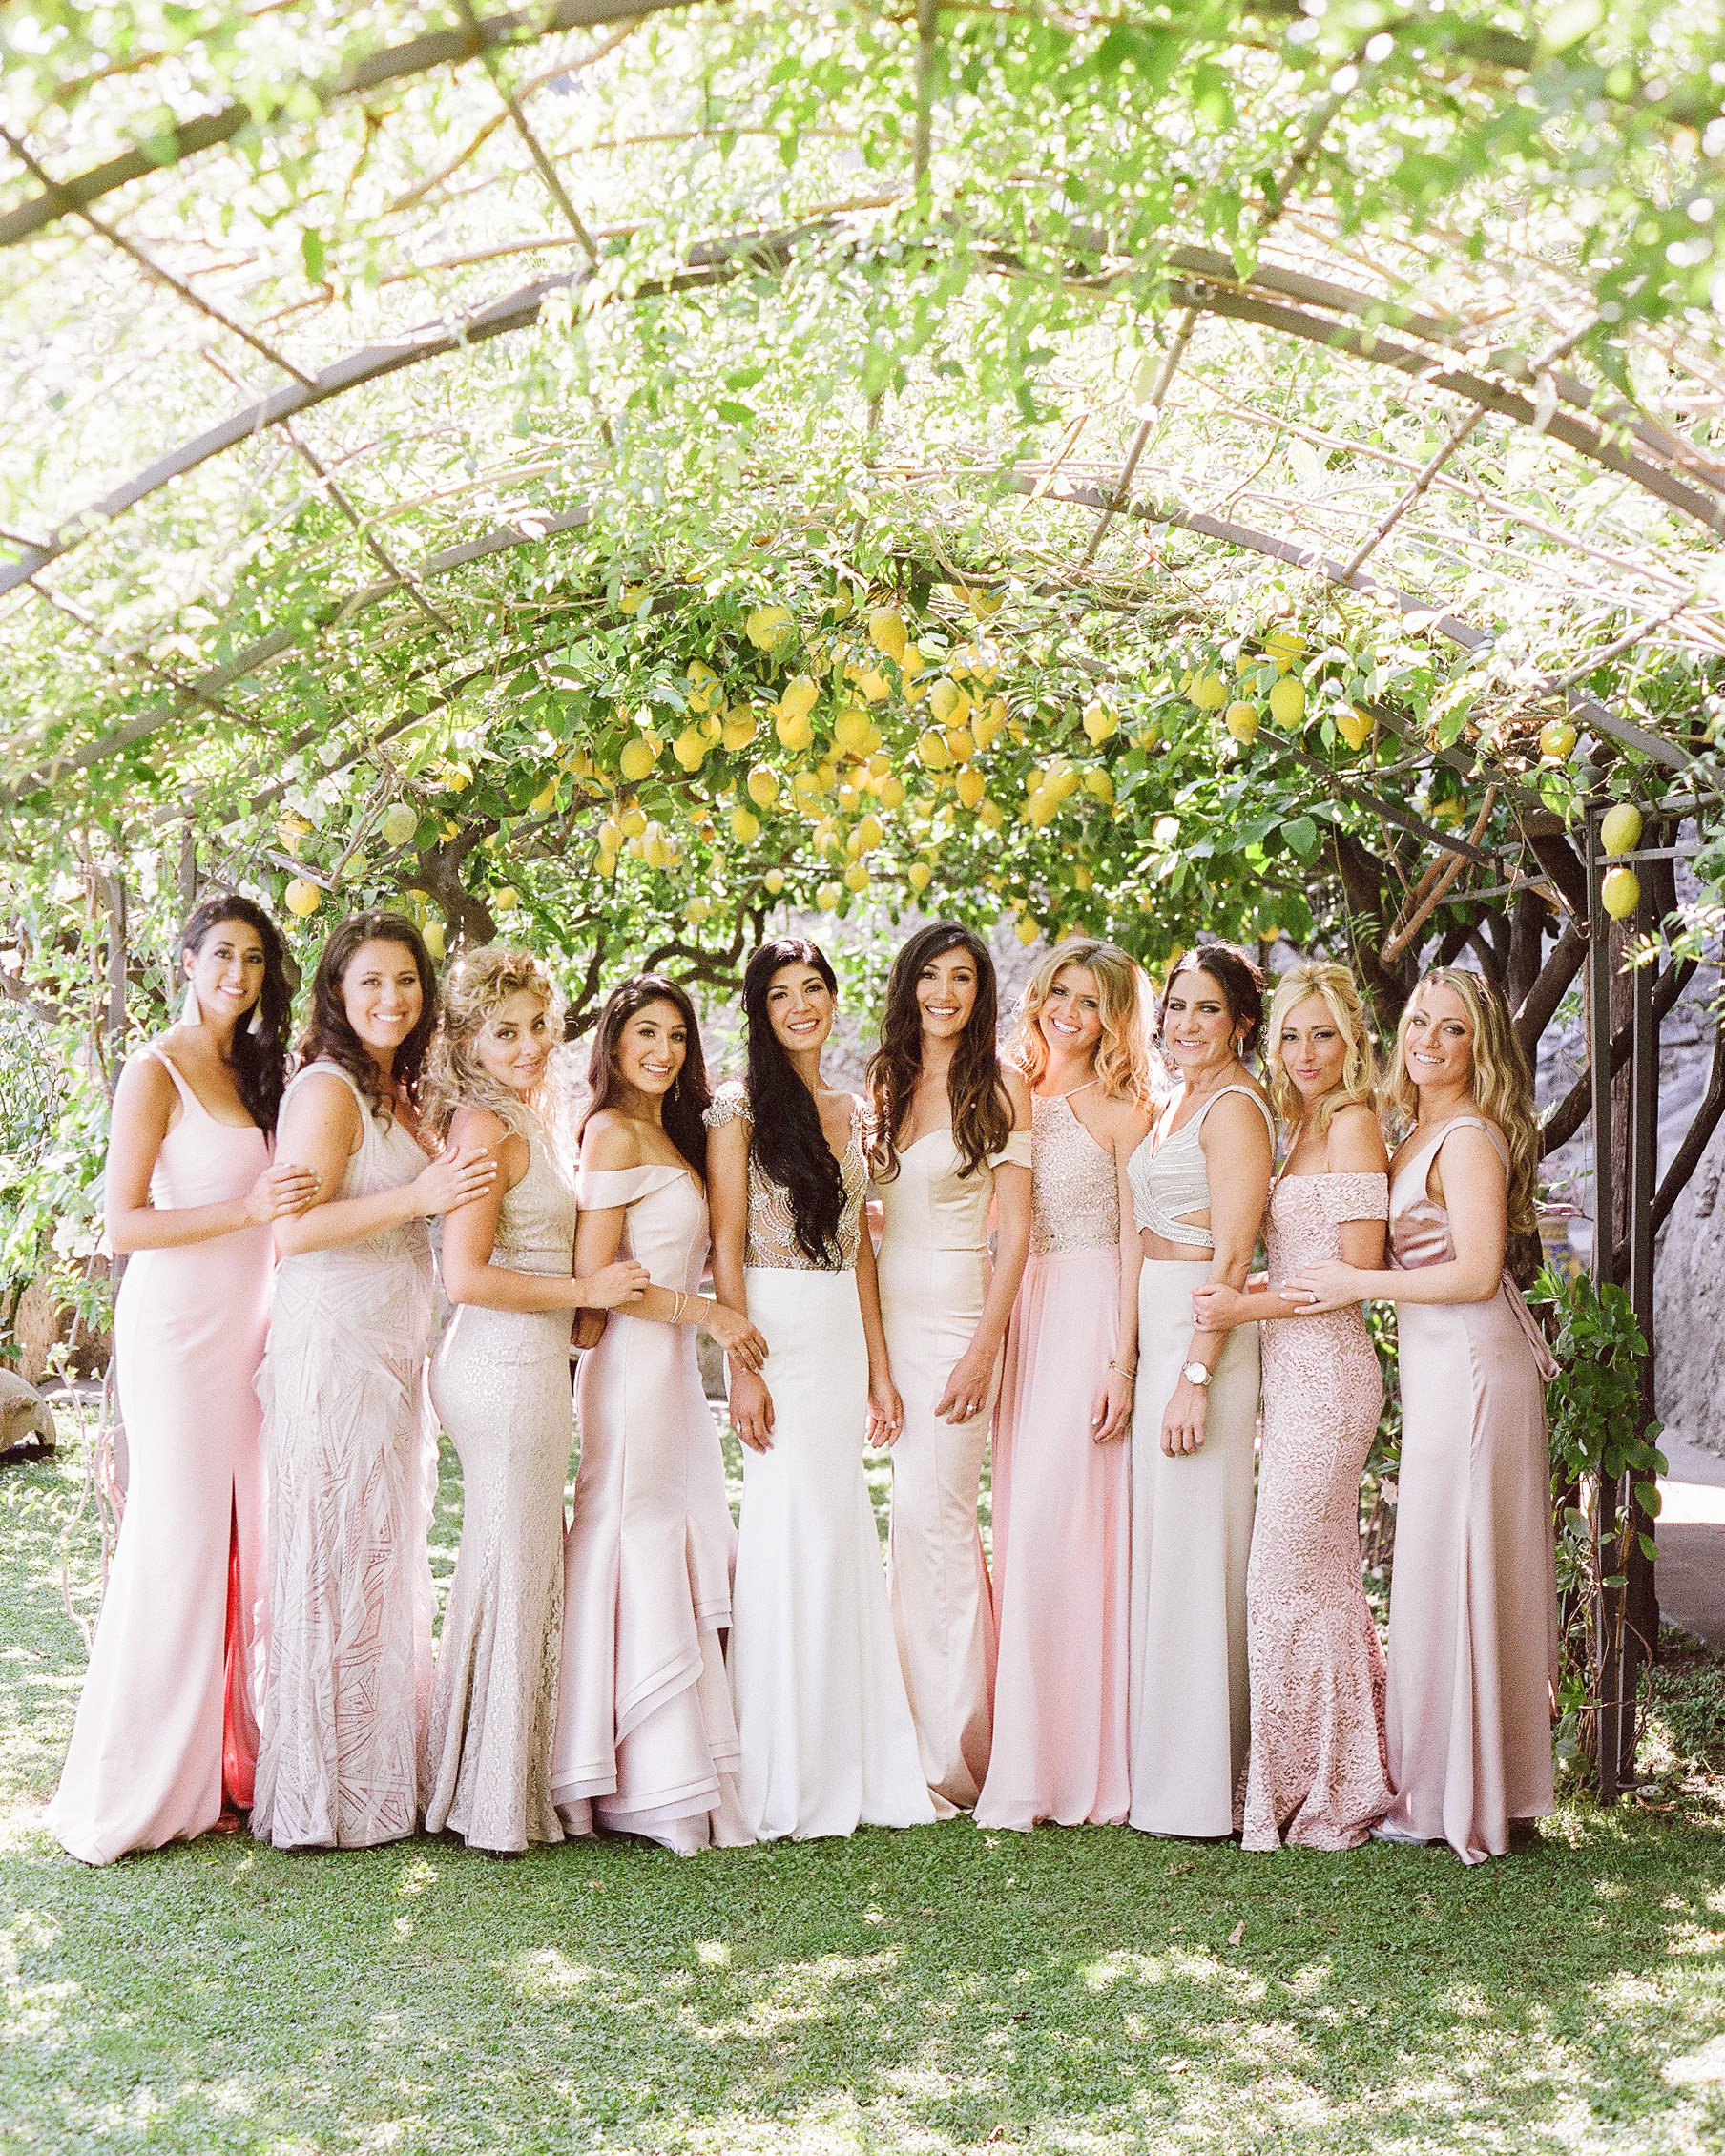 lisa greg italy wedding bridesmaids bride arch